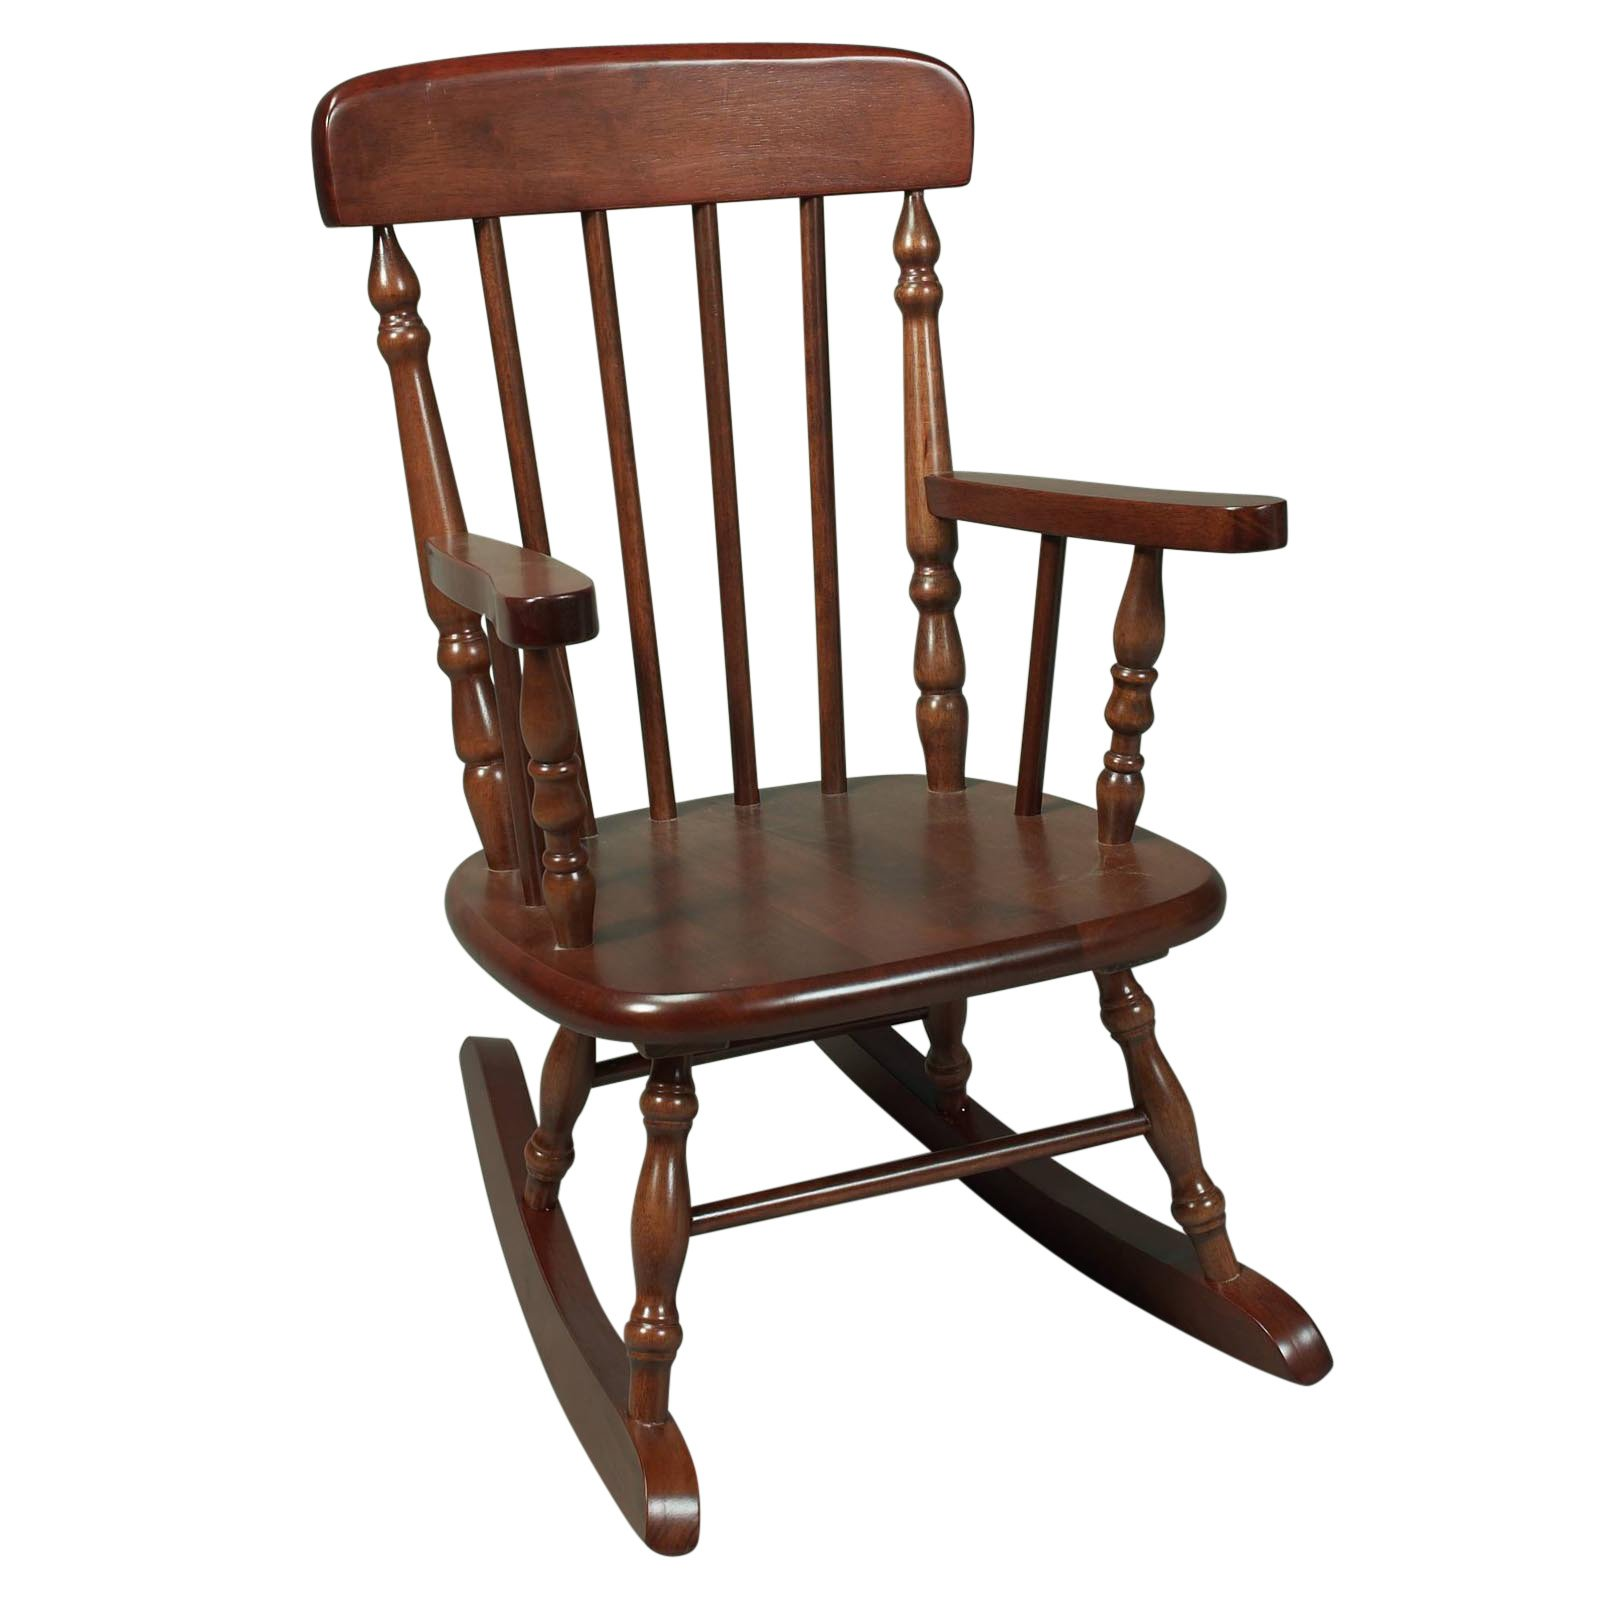 Beautiful Picket Rocking Chair. Wooden Rocking Chair